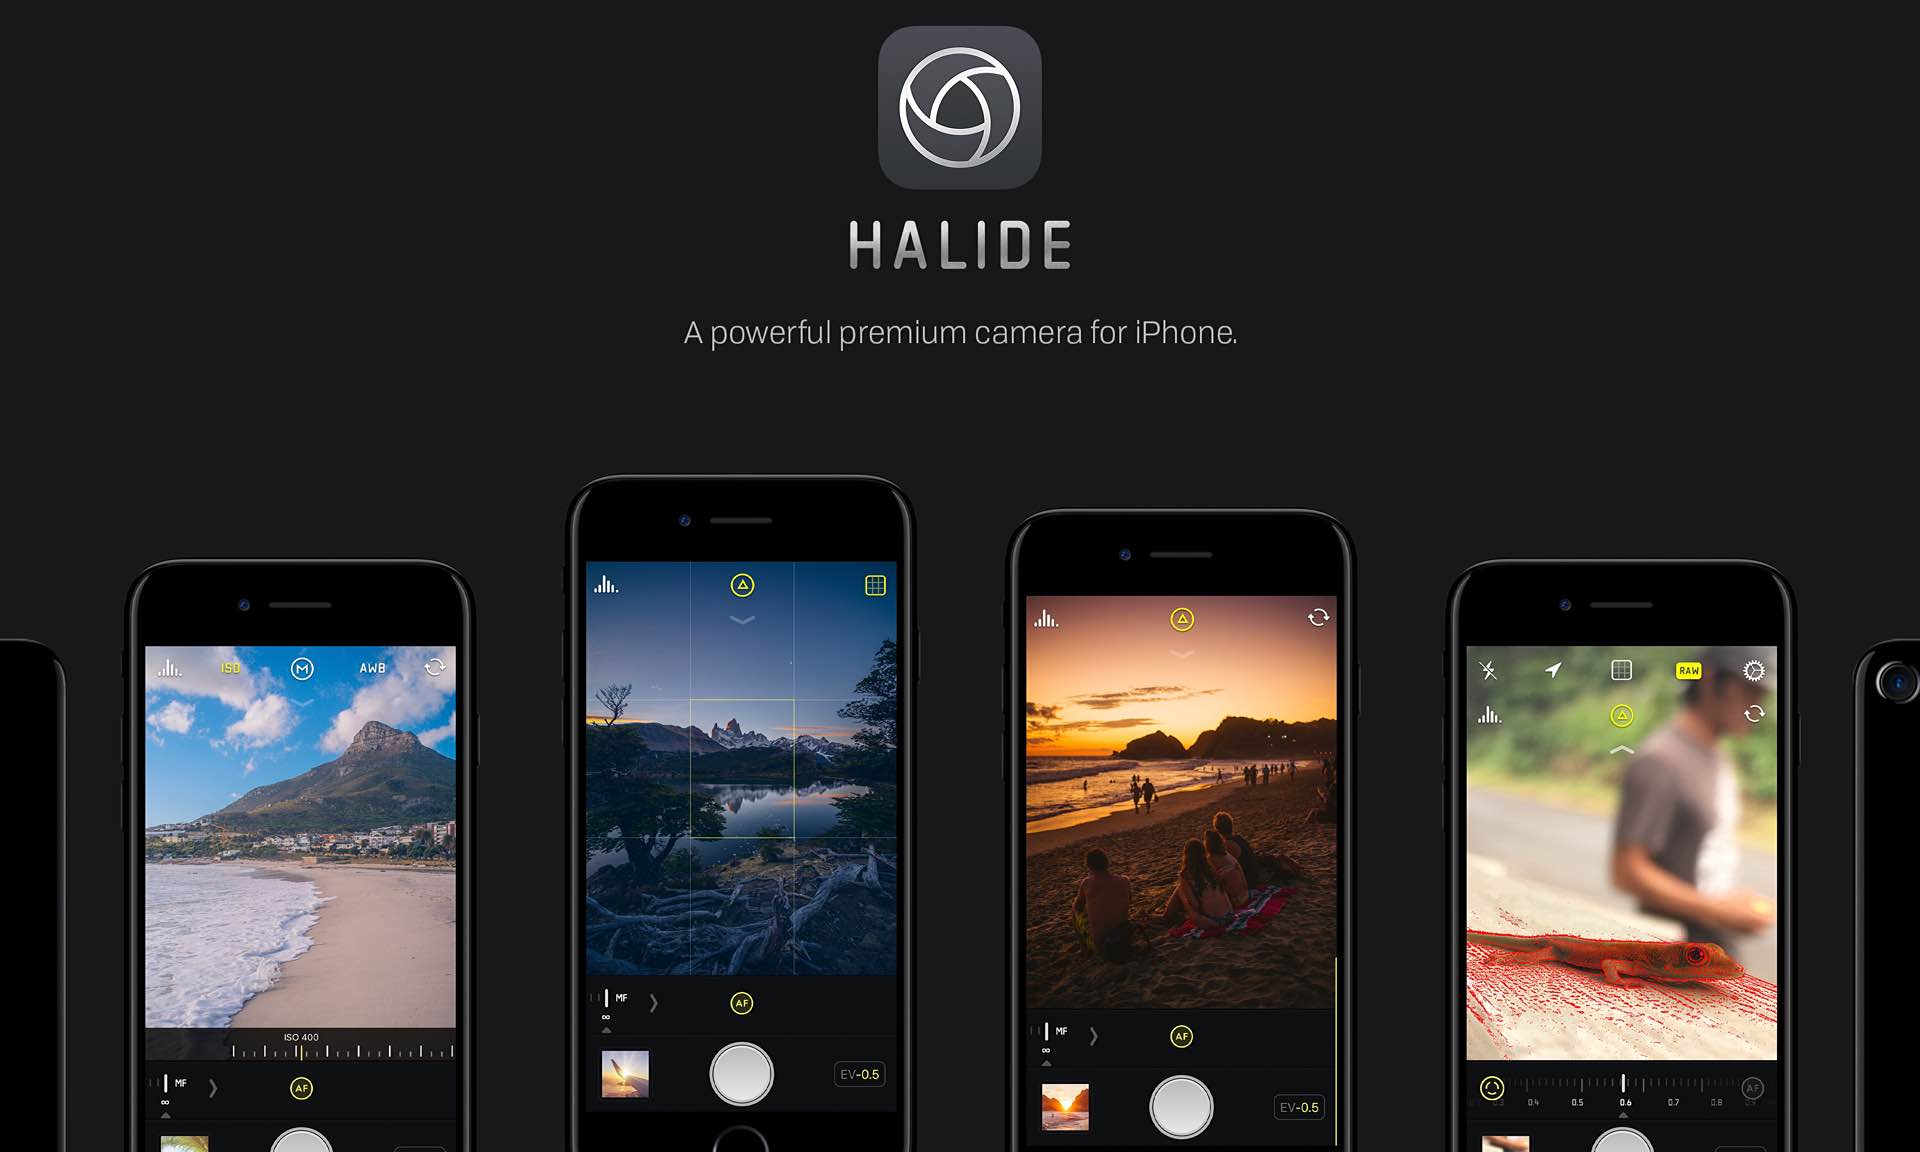 halide-camera-app-for-iphone